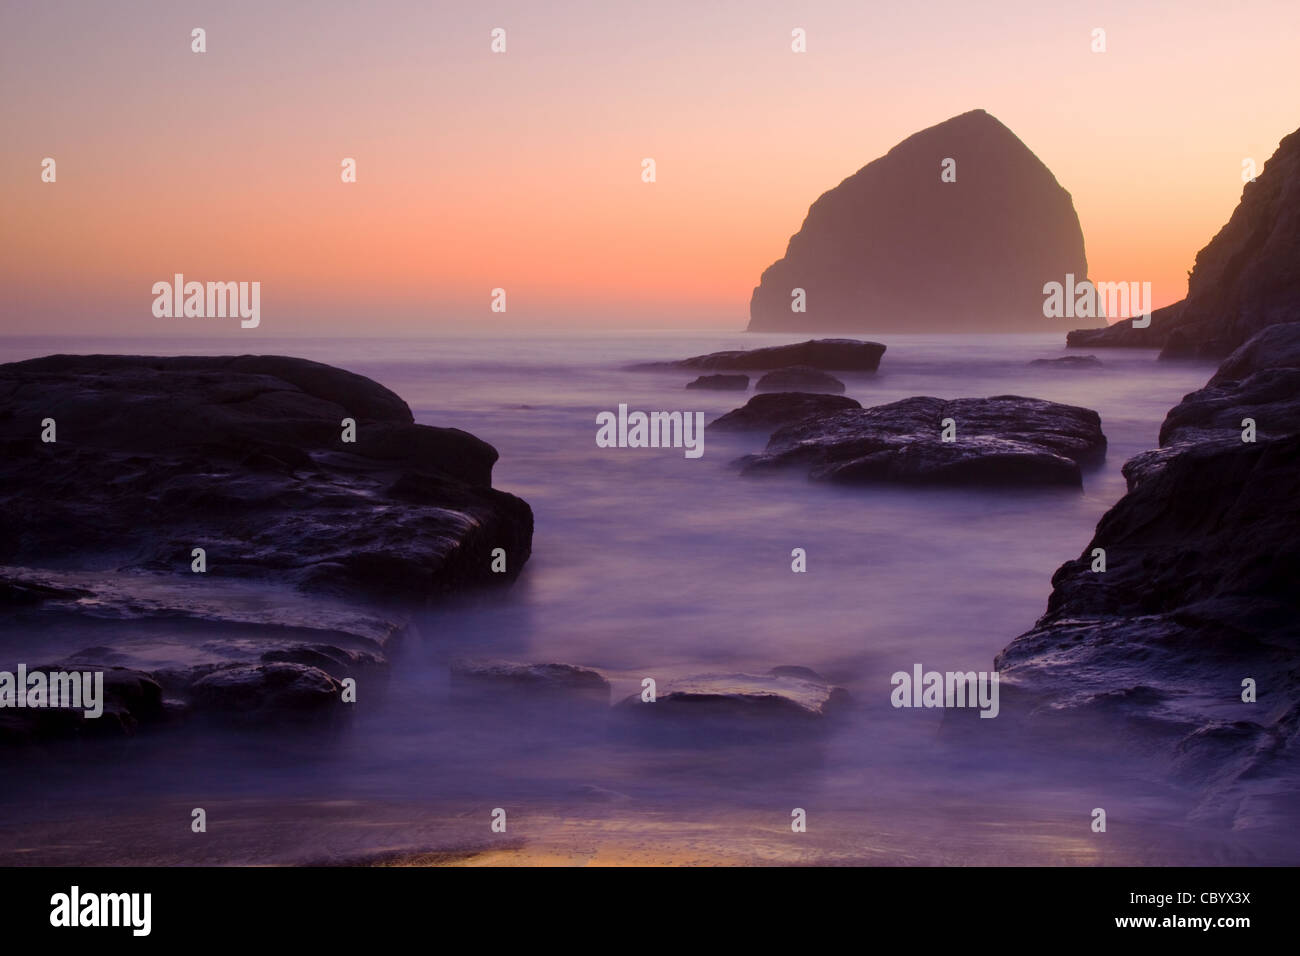 Oregon Beach Sunset with Waves in Motion Stock Photo